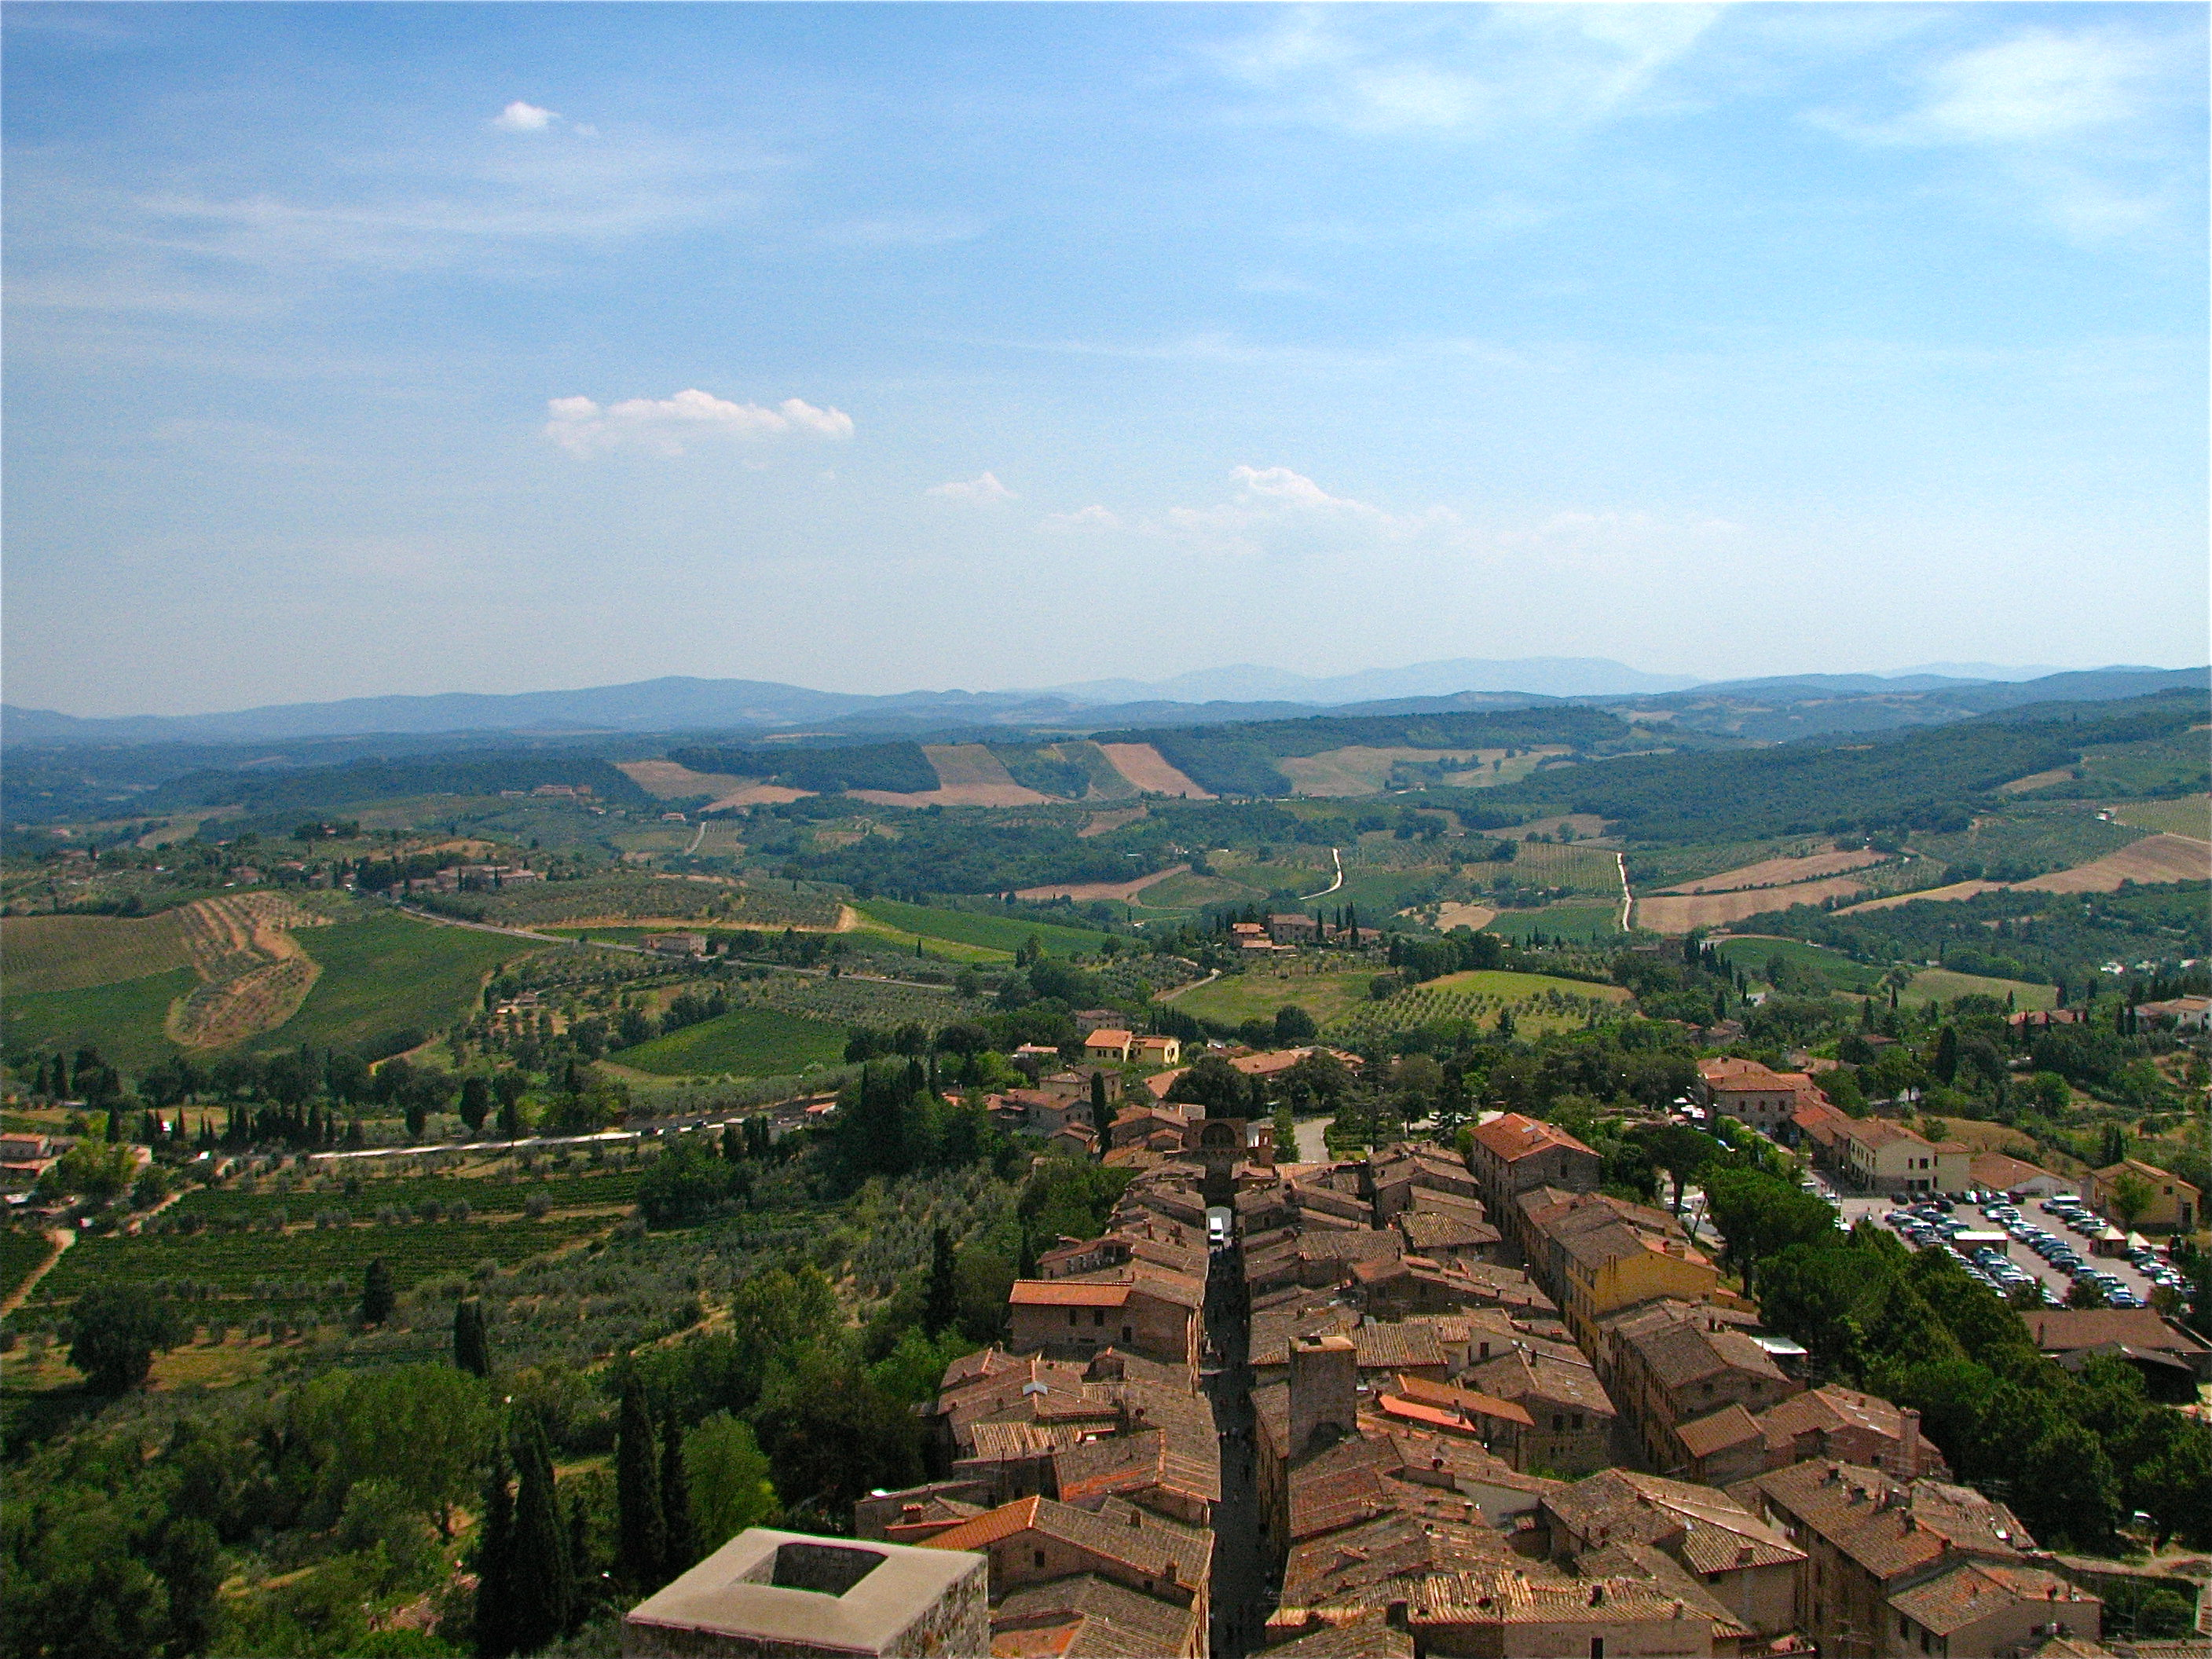 Tuscany seen from the tower of San Gimignano